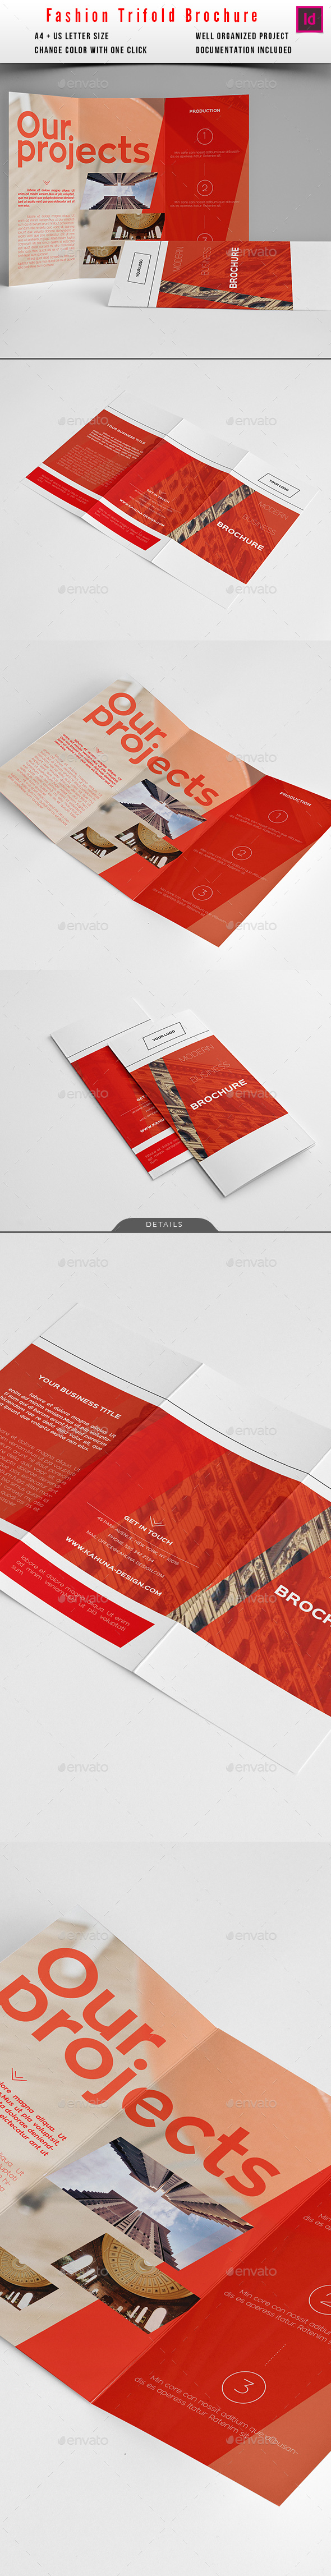 Universal Business Trifold Brochure - Informational Brochures